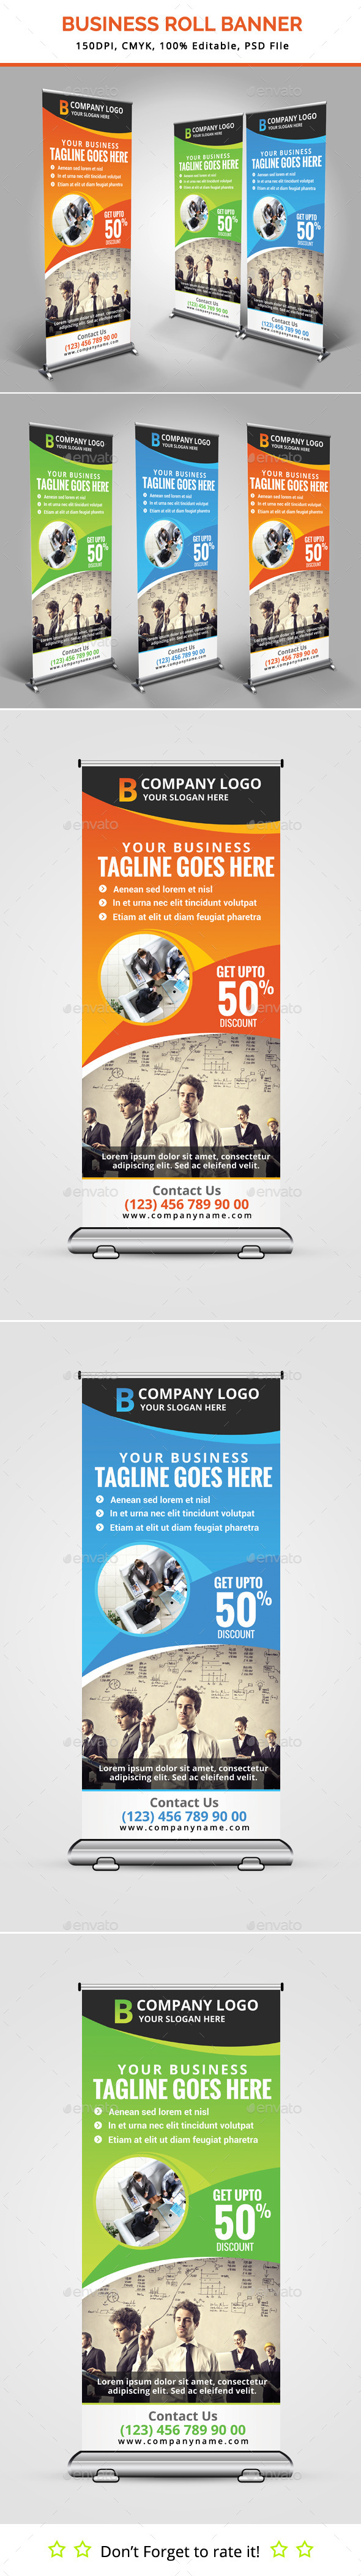 Business Roll Up Banner V12 - Signage Print Templates